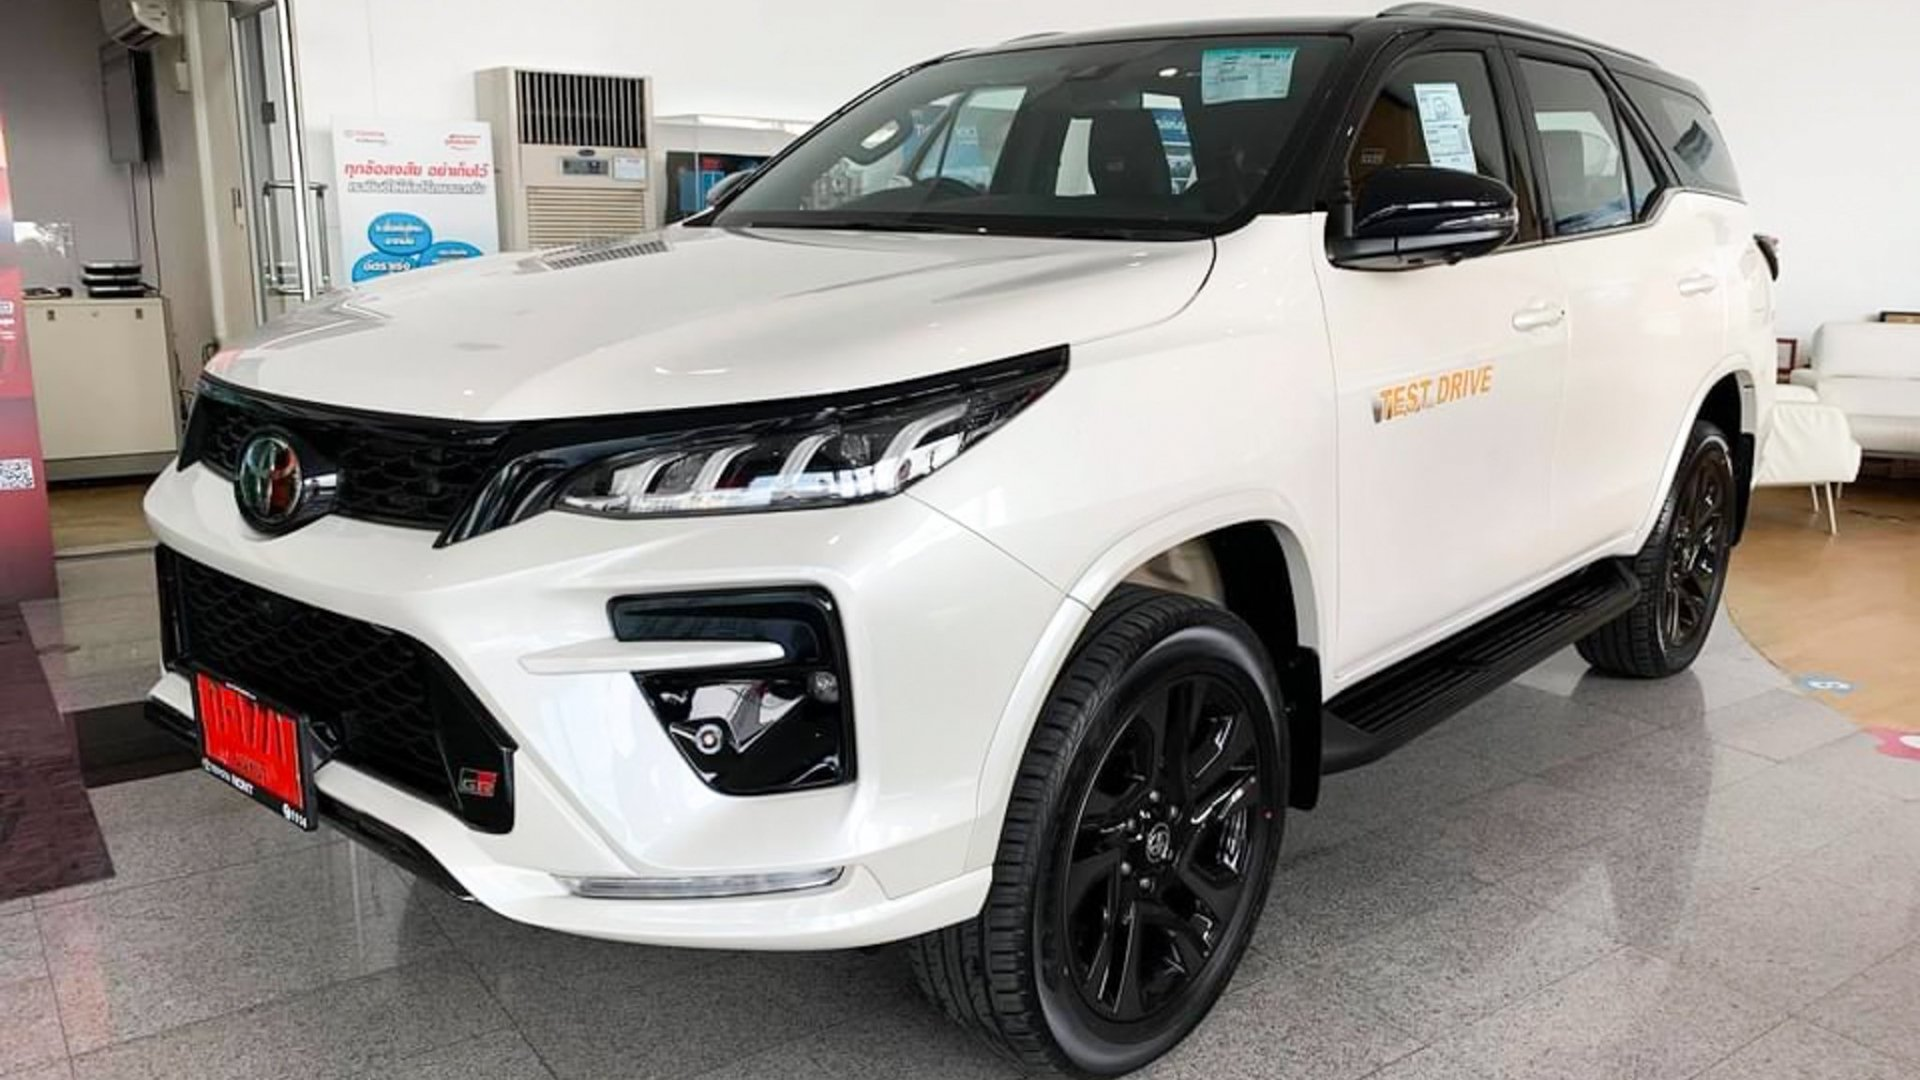 Preview Toyota Fortuner GR Sport 2022 priced at 1.3 billion at a Thai dealer, coming soon in Vietnam 1